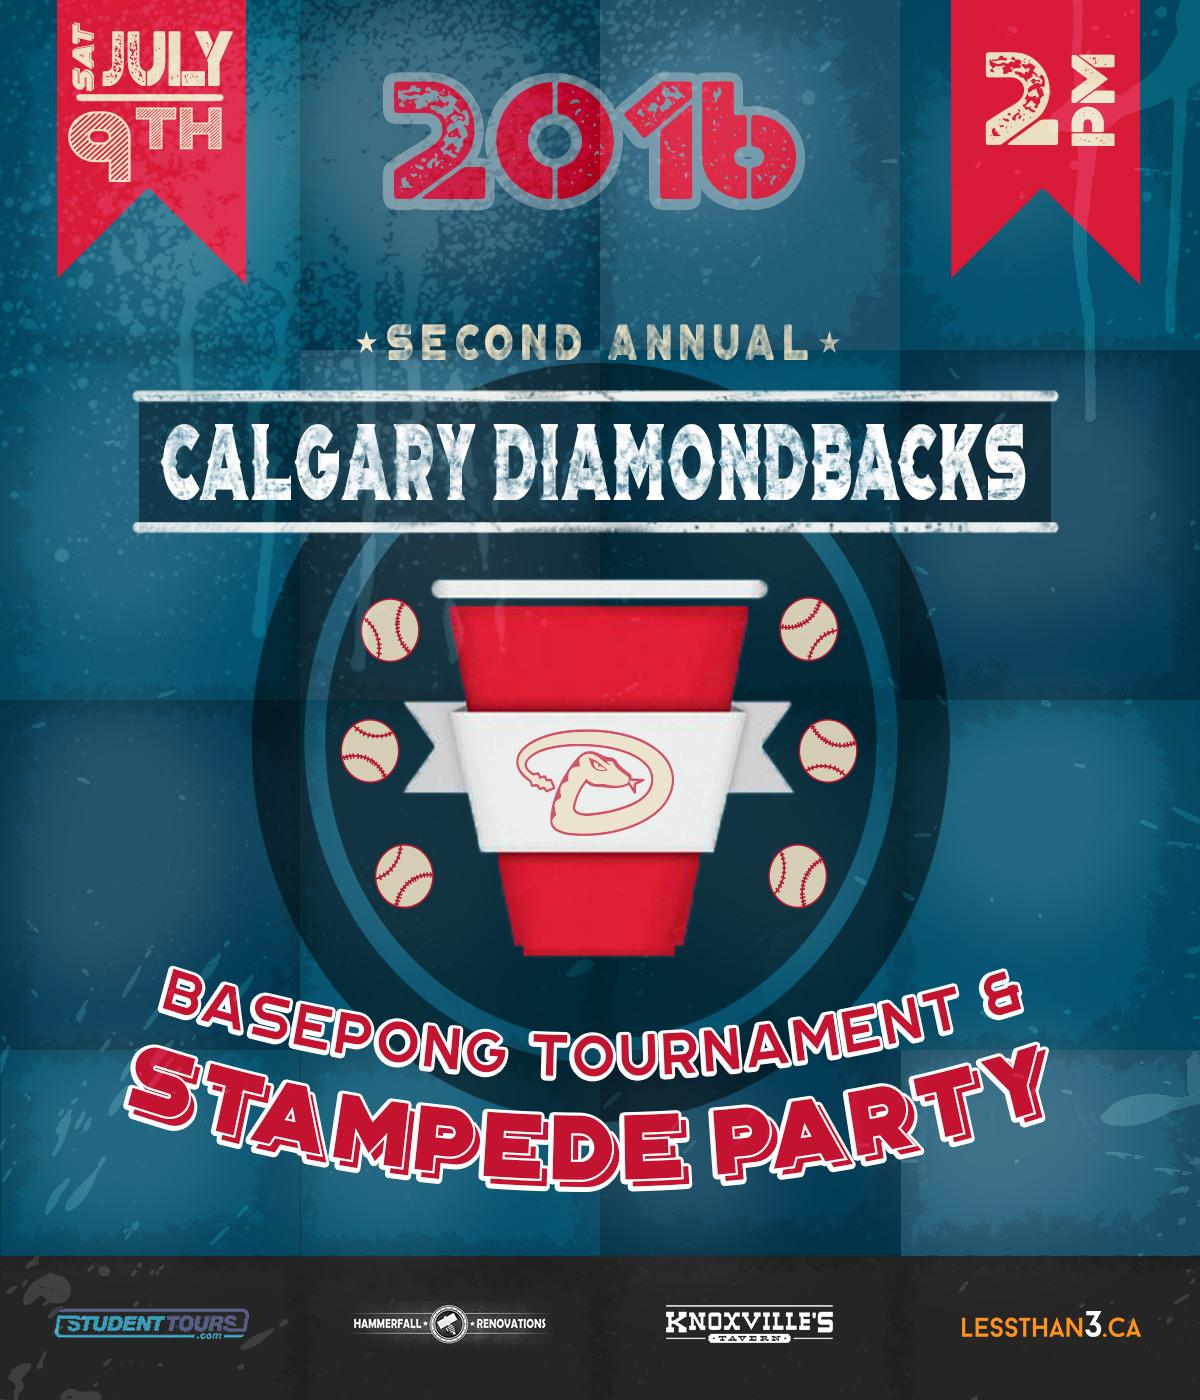 DiamondBacks Stampede Party